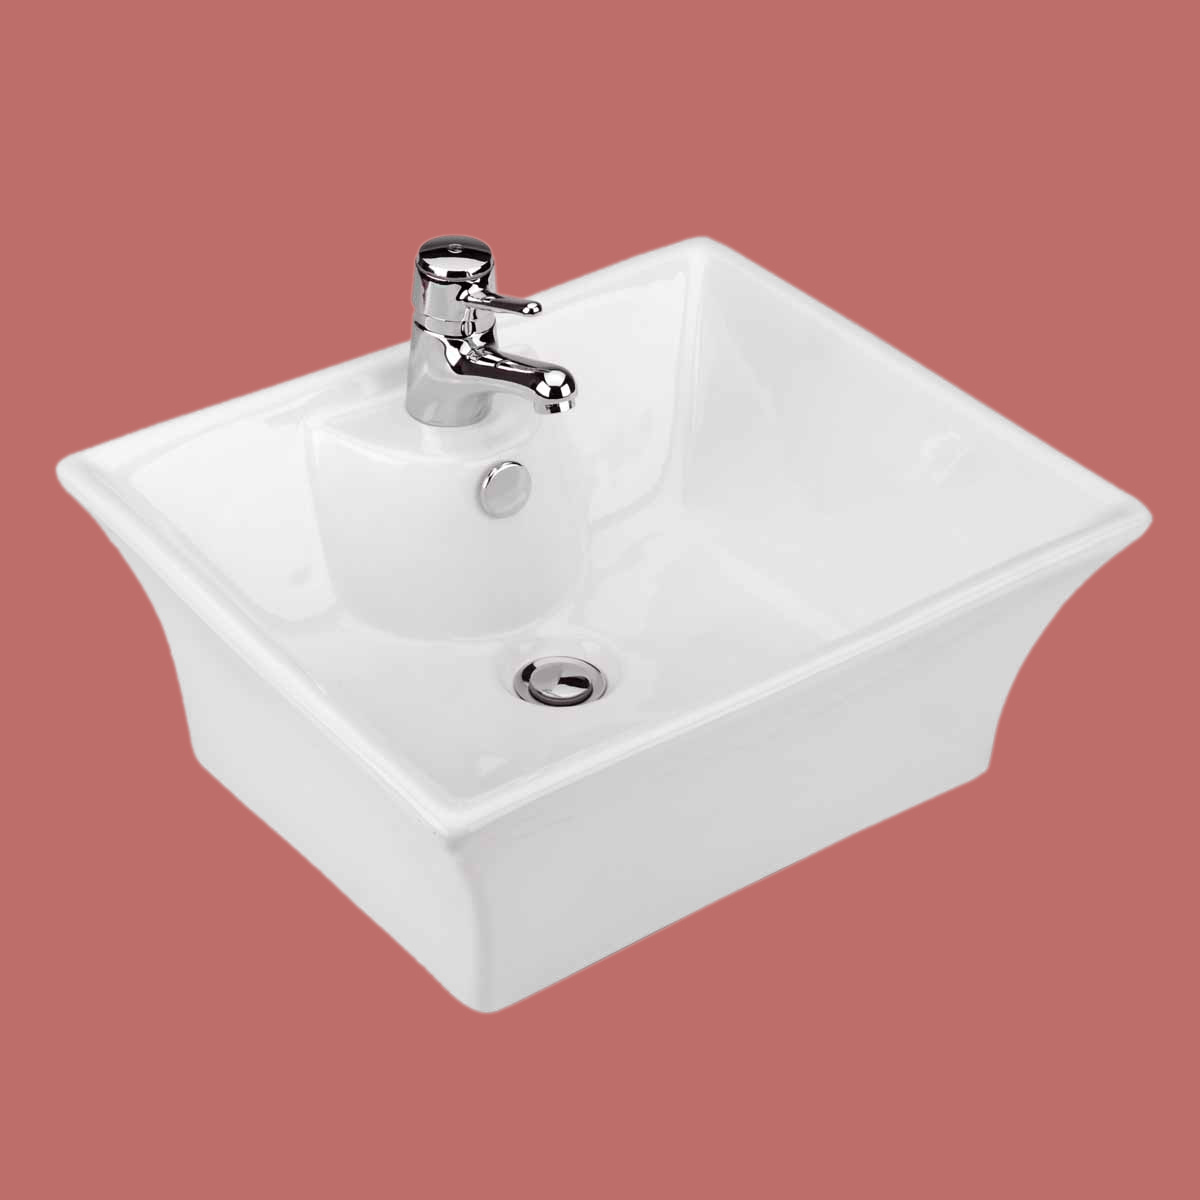 Bathroom Vessel Sink White China Newcastle Square Faucet Hole